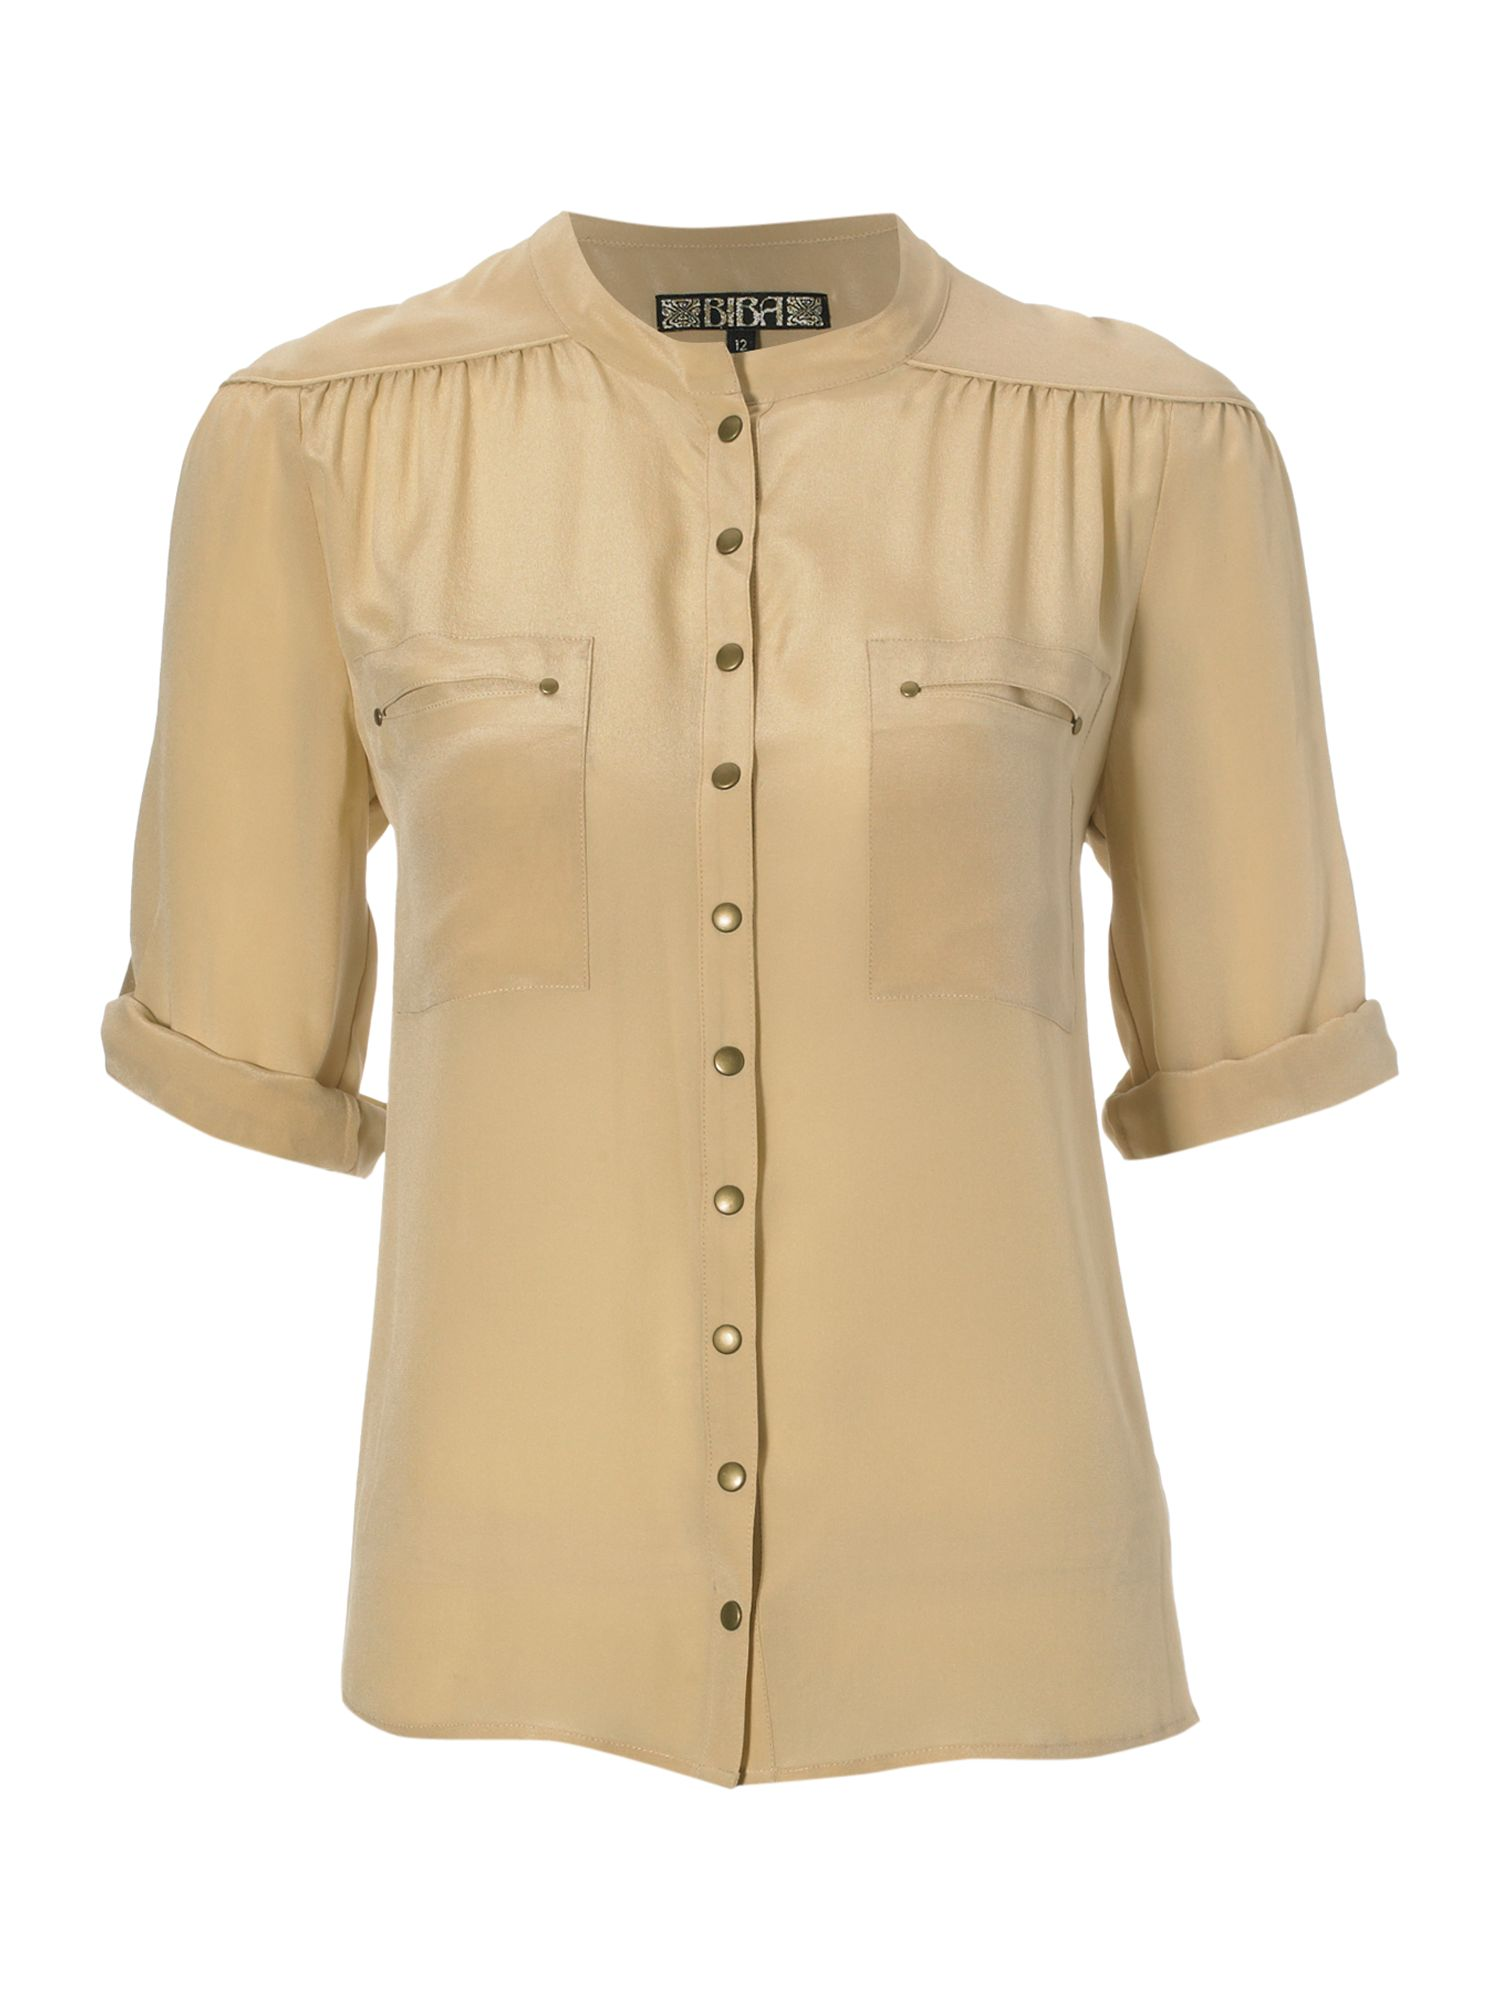 Womens Biba Silk safari blouse, Cream